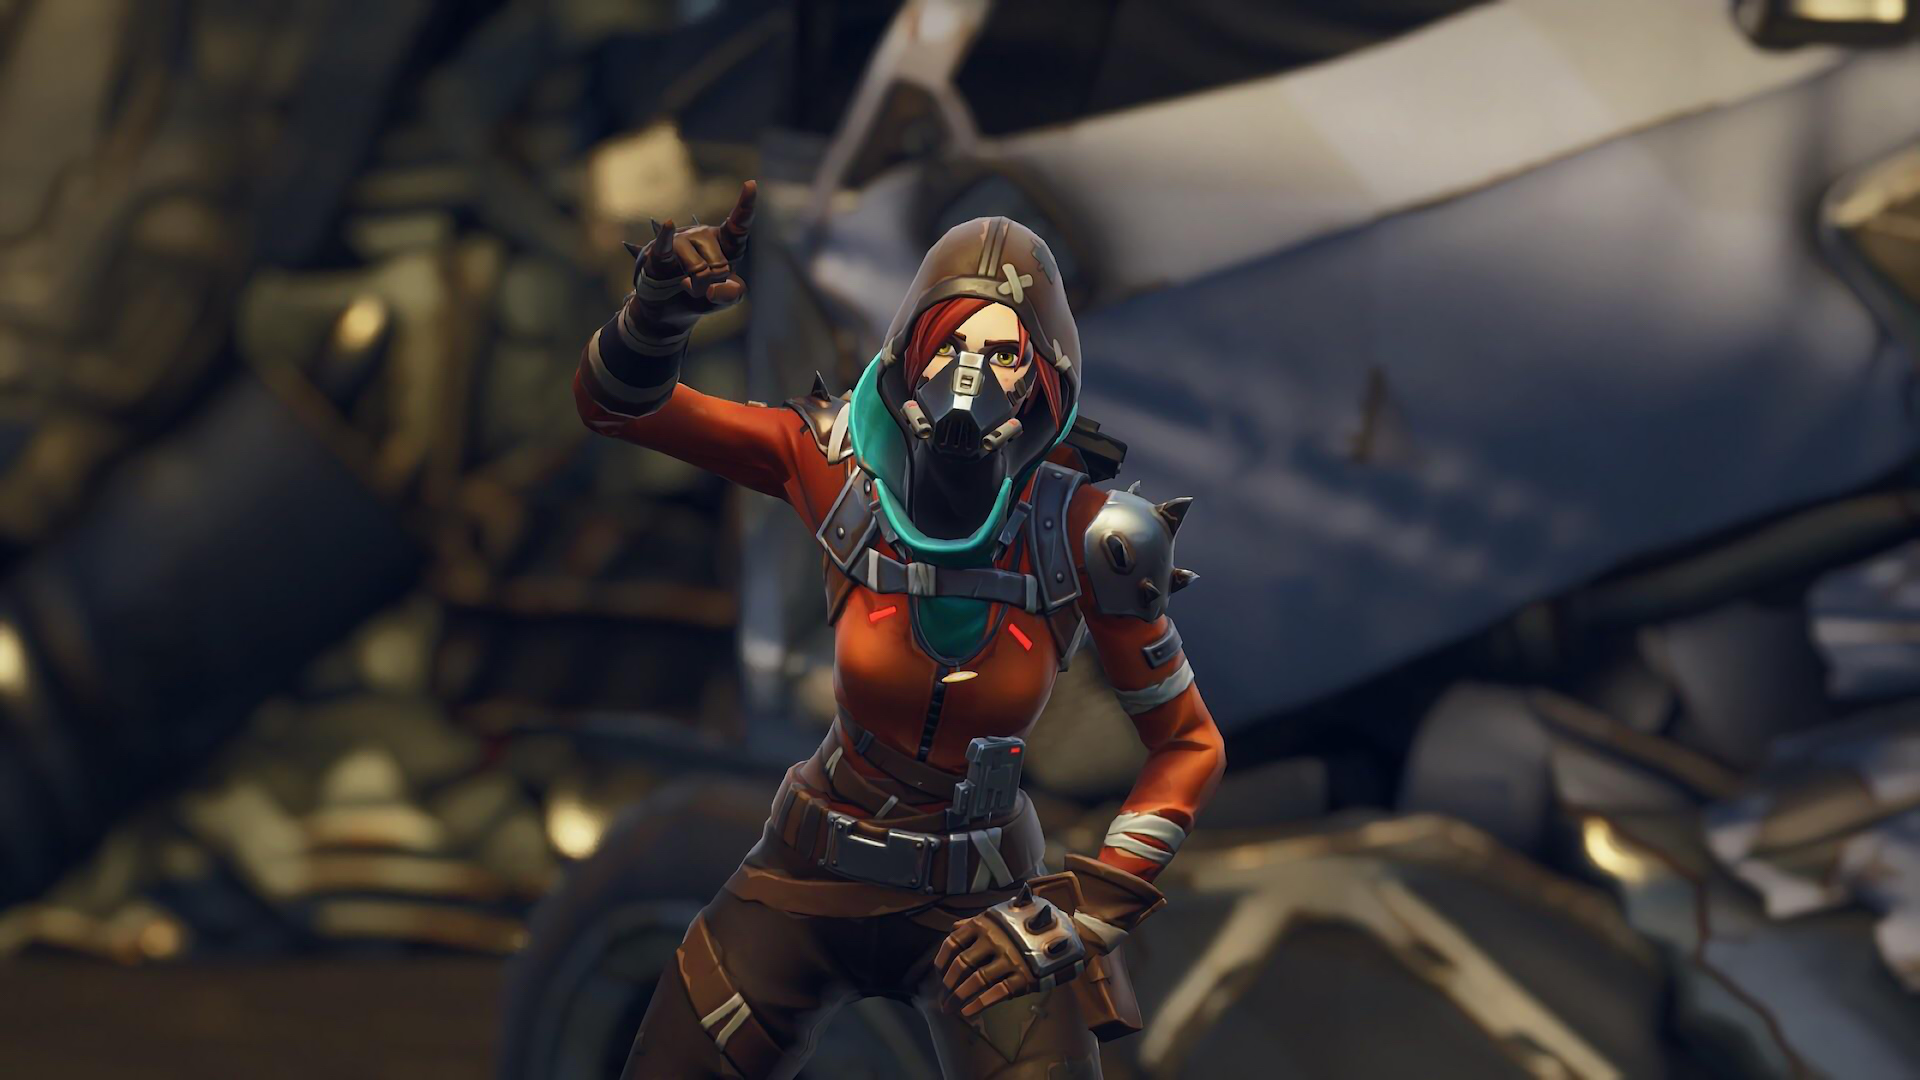 Verge Fortnite Skin Is Back All Details Wallpapers For Your Browser Mega Themes